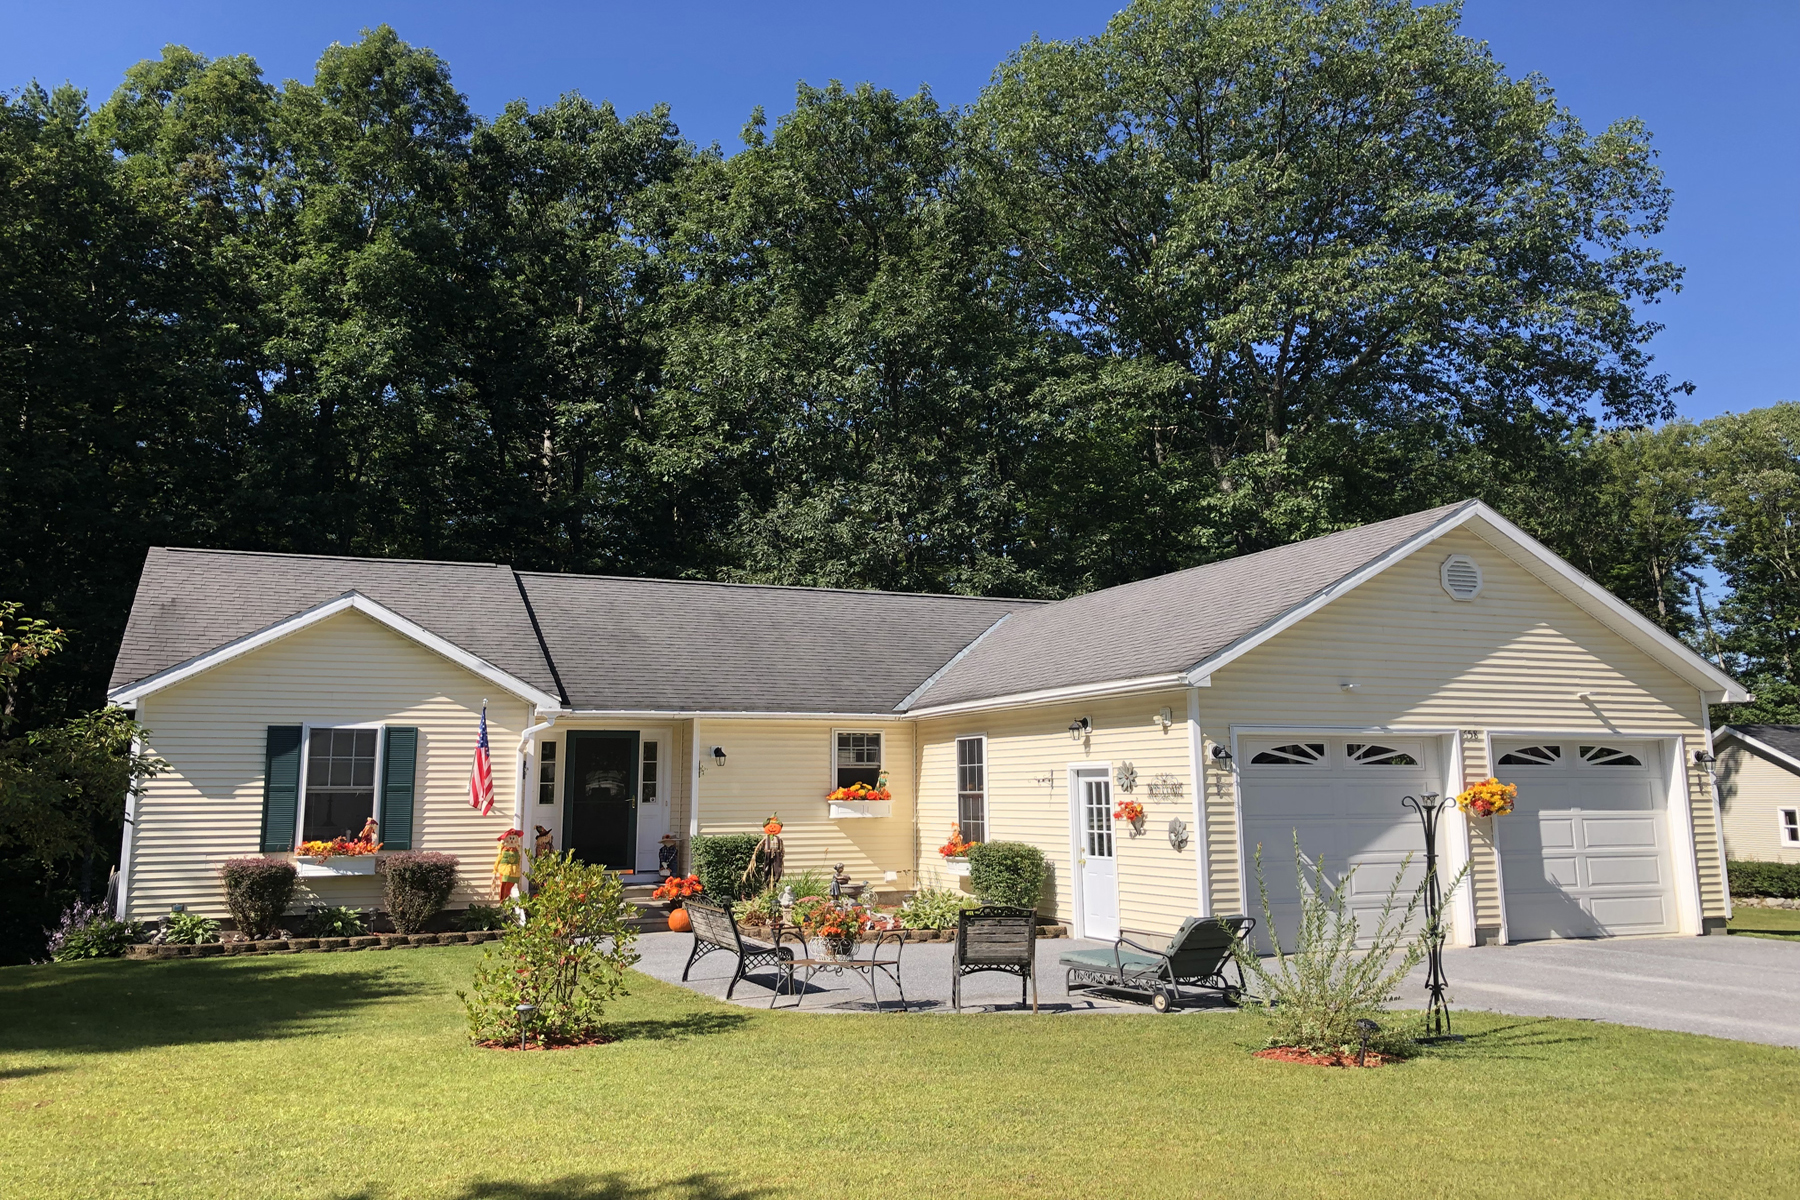 Single Family Homes for Sale at REAP THE REWARDS 658 Deer Run Rd Brandon, Vermont 05733 United States